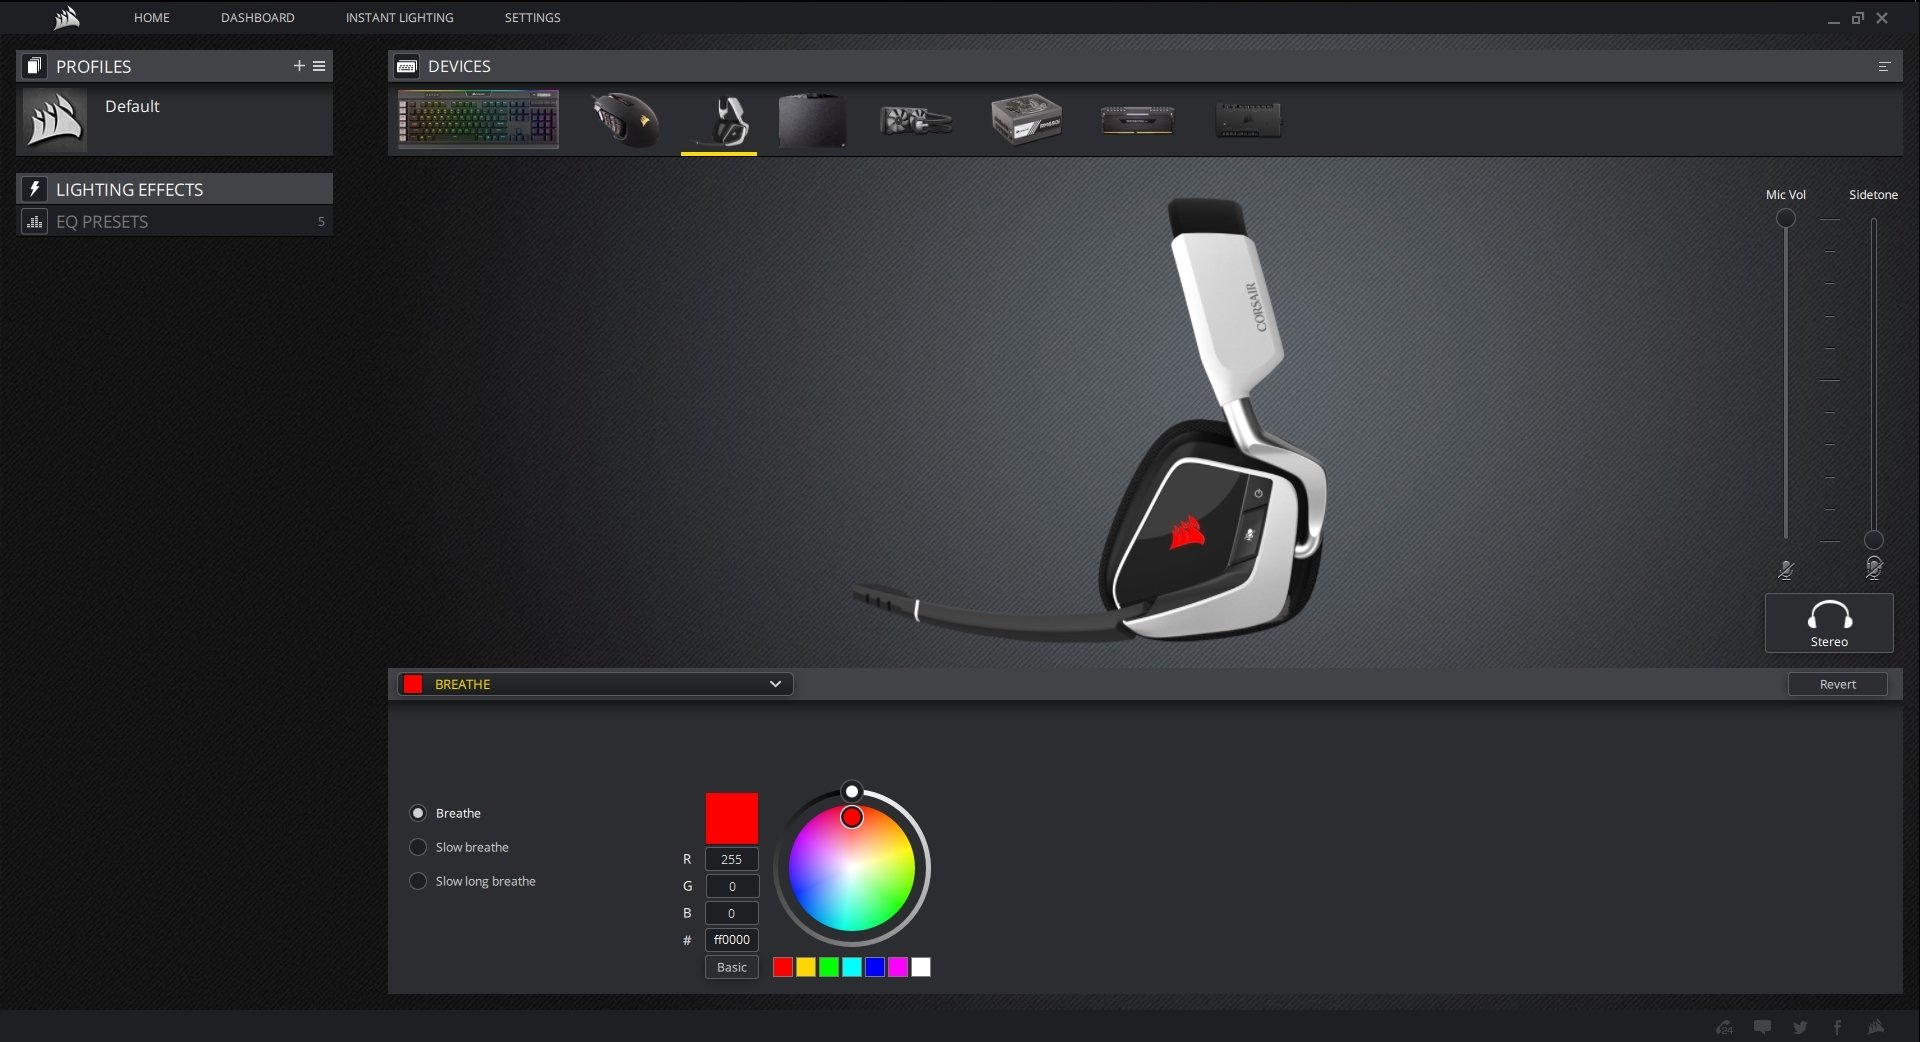 Corsair Void Pro Rgb Usb Gaming Headset Dolby 71 Surround Sound White Headphones For Pc Discord Certified 50mm Drivers Carbon Ca 9011154 Na Computers